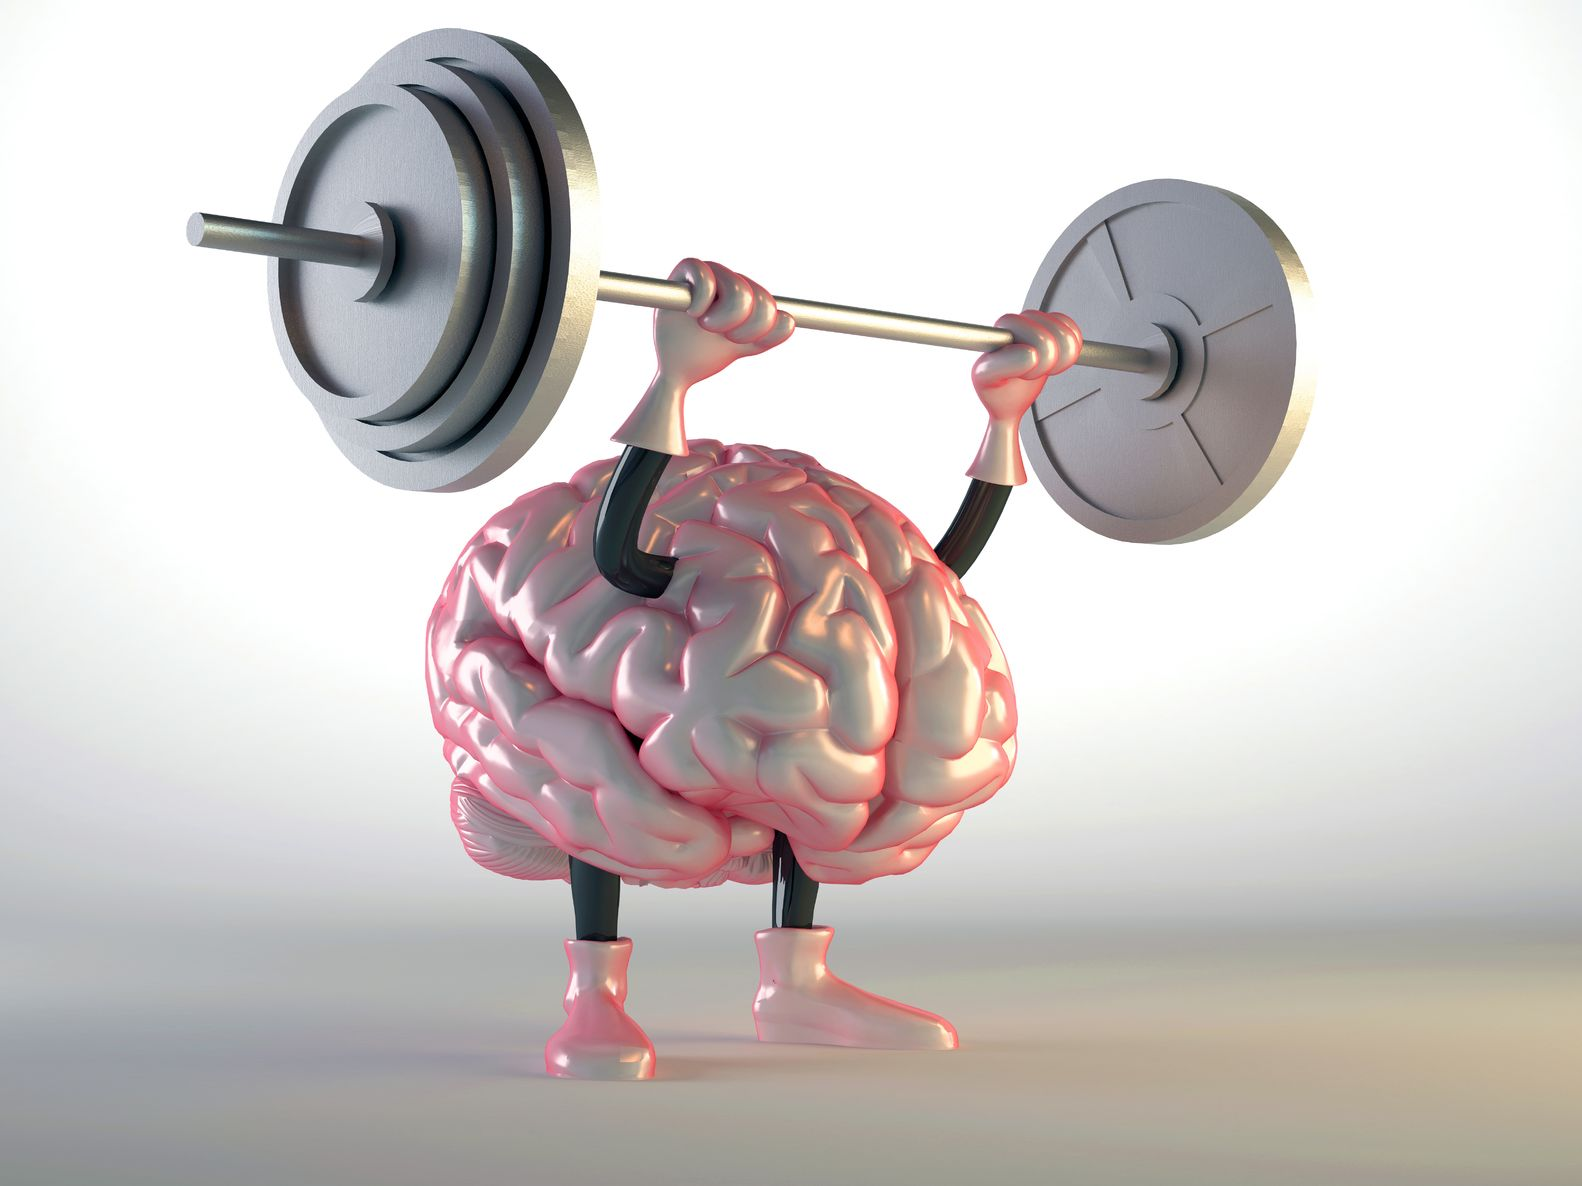 Exercising Brain power. https://www.info-on-high-blood-pressure.com/Health-Healing-And-Nutrition.html